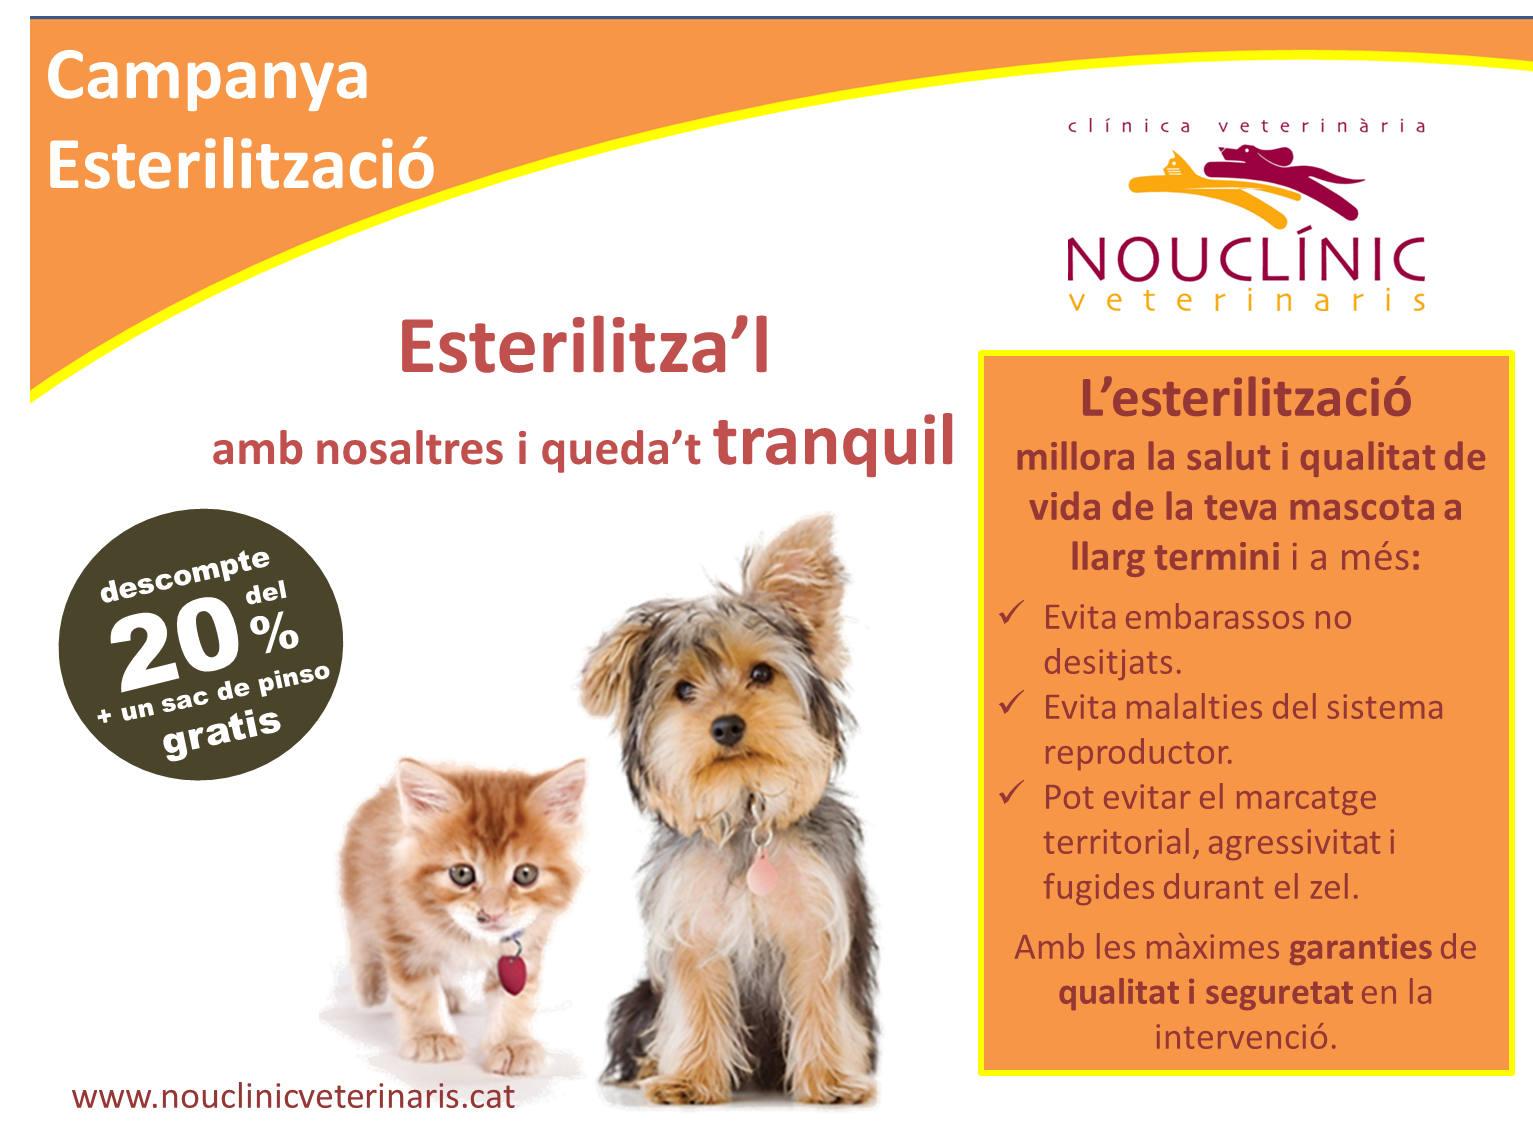 Campanya plans de salut 2019 - Nouclinic Veterinaris